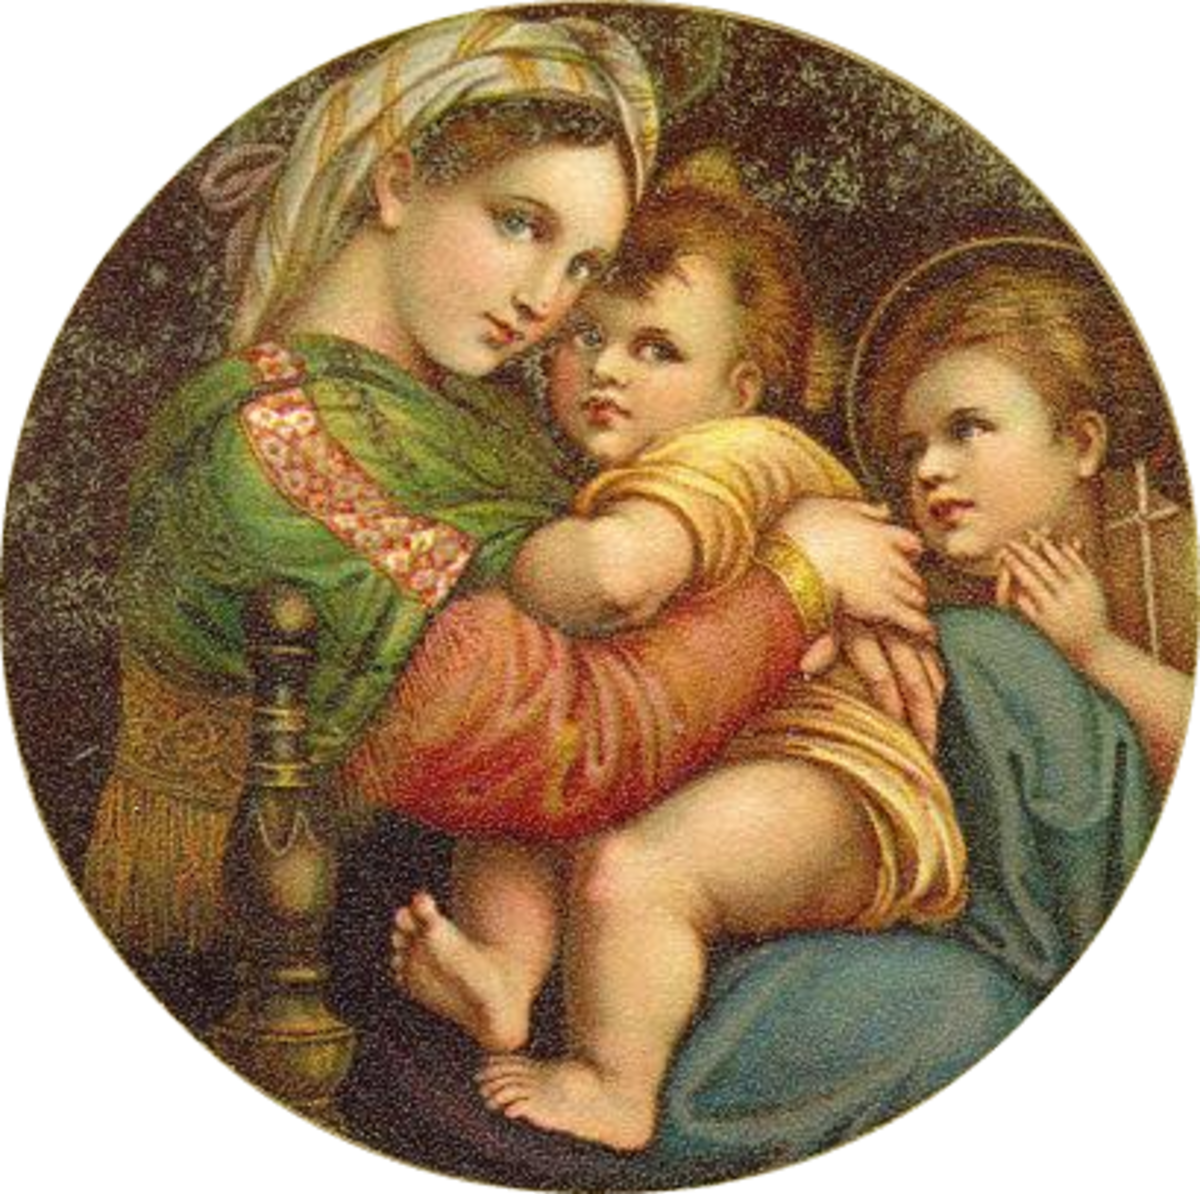 Vintage Christmas images: Baby Jesus, Mary and angel